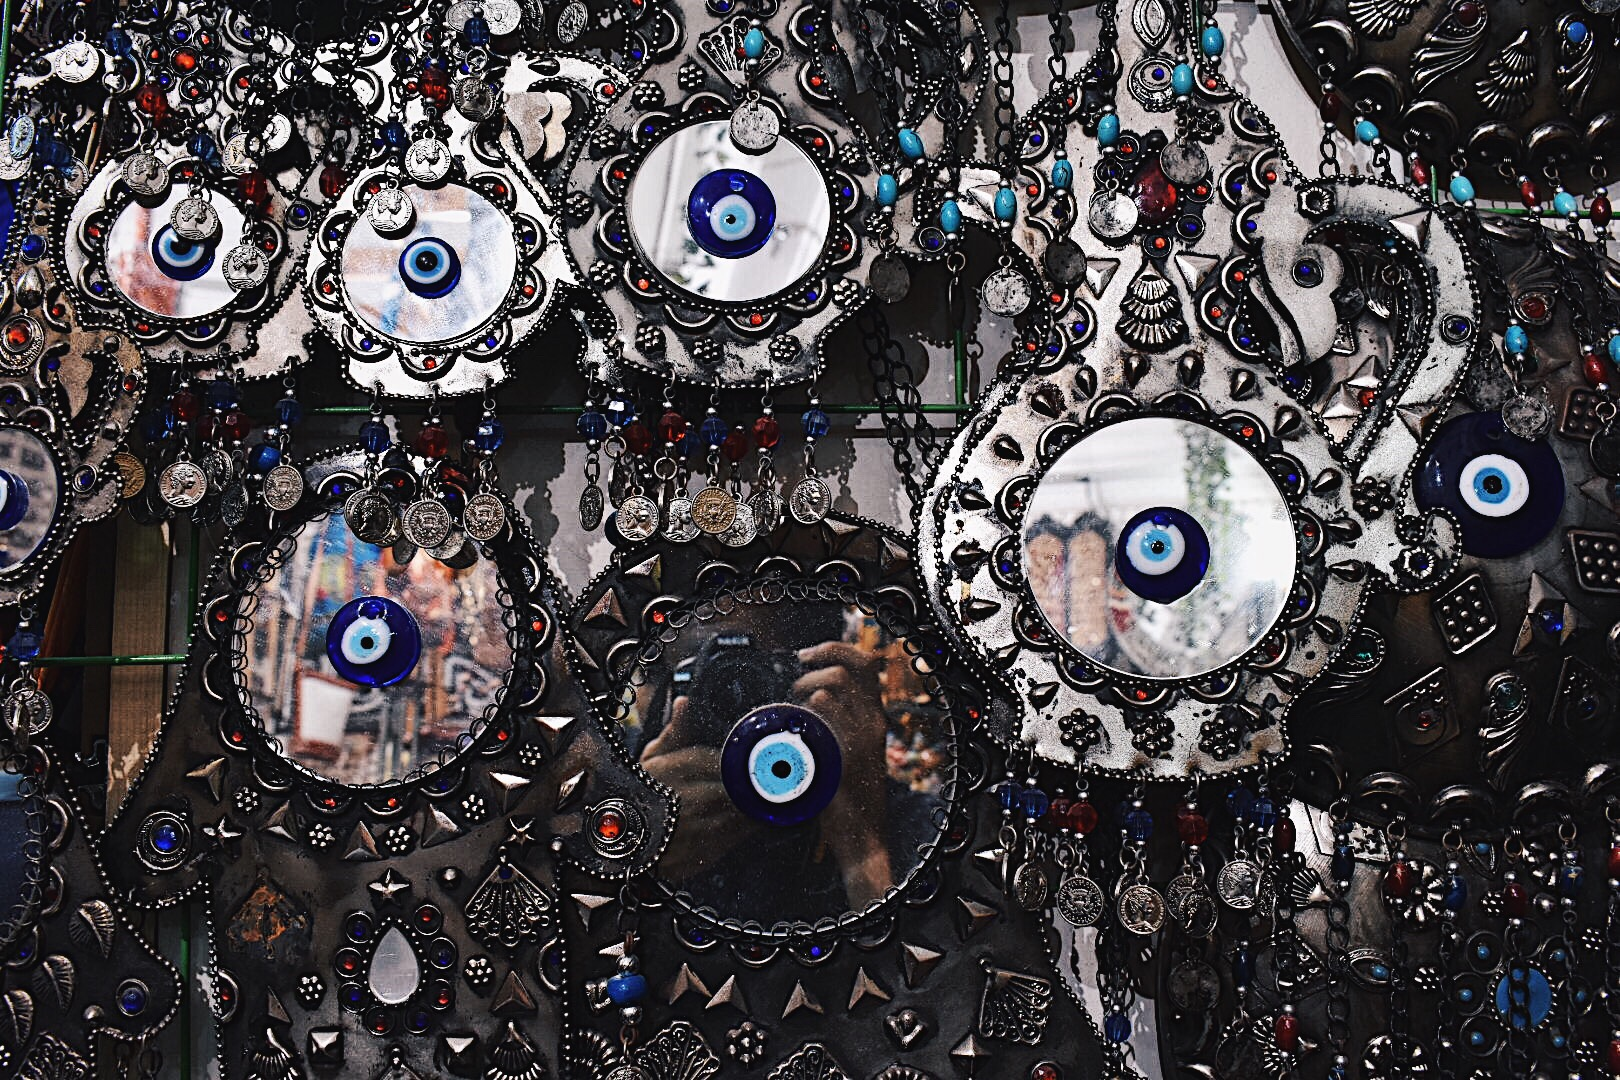 Nazar (evil eye) mirrors